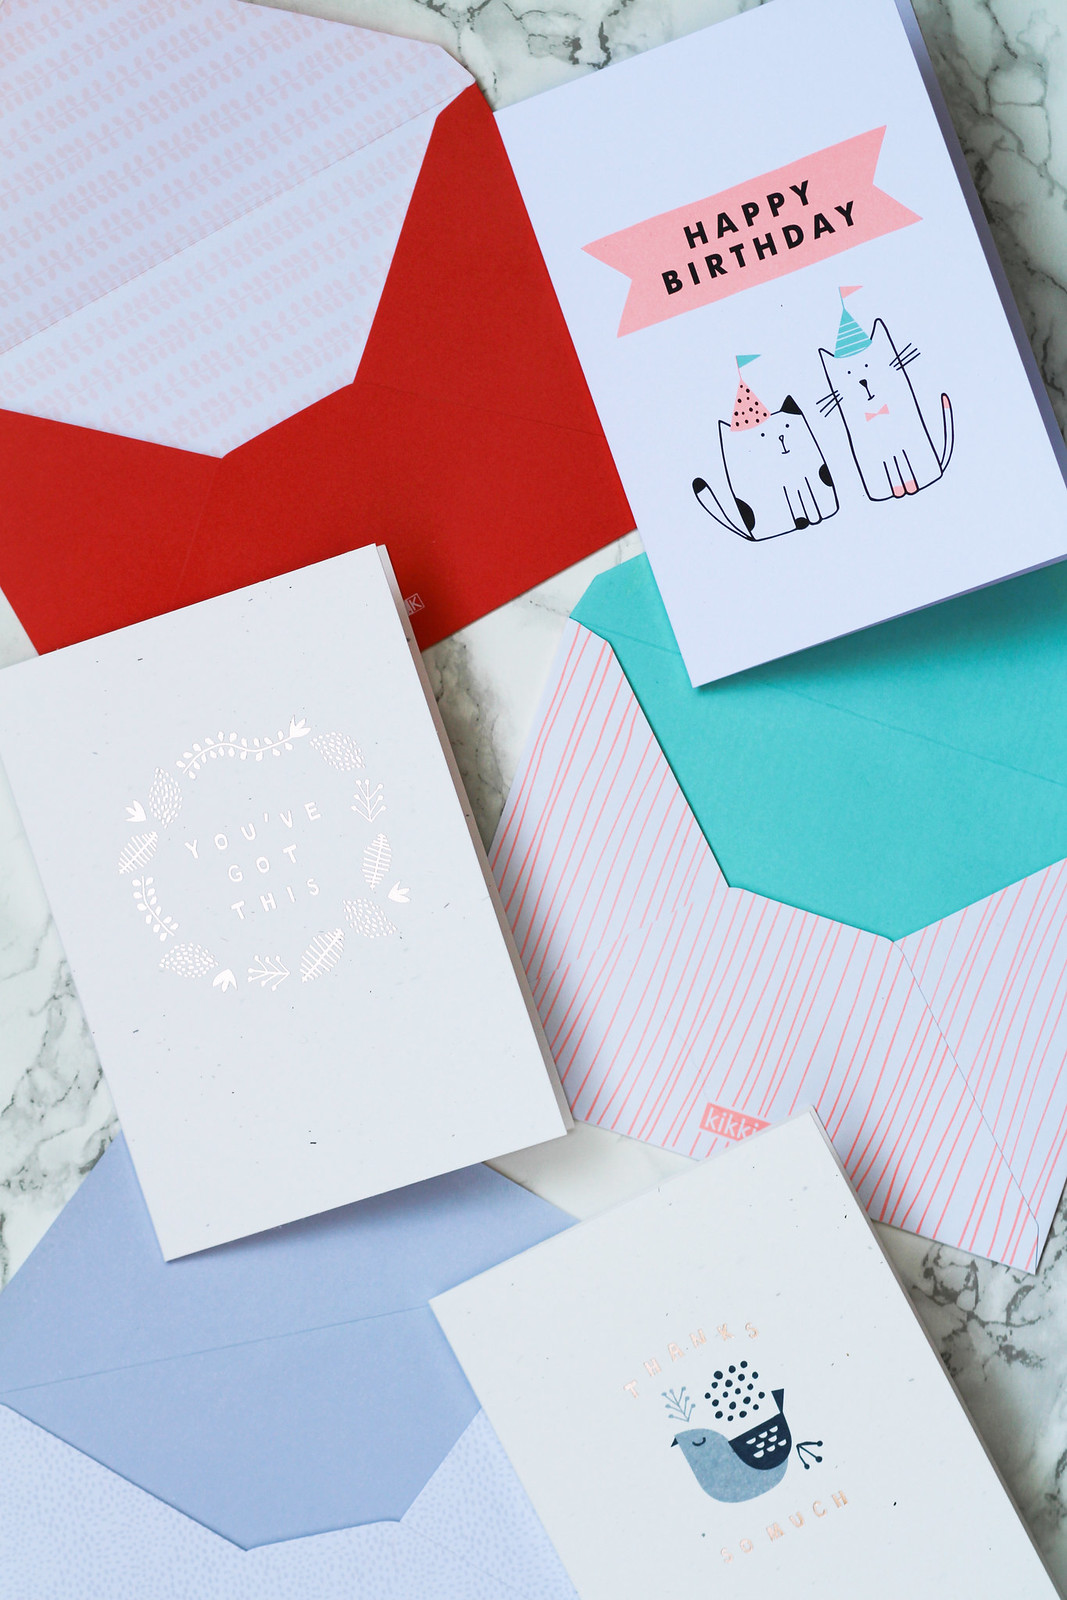 The Little Things blog Japanese Stationery Haul